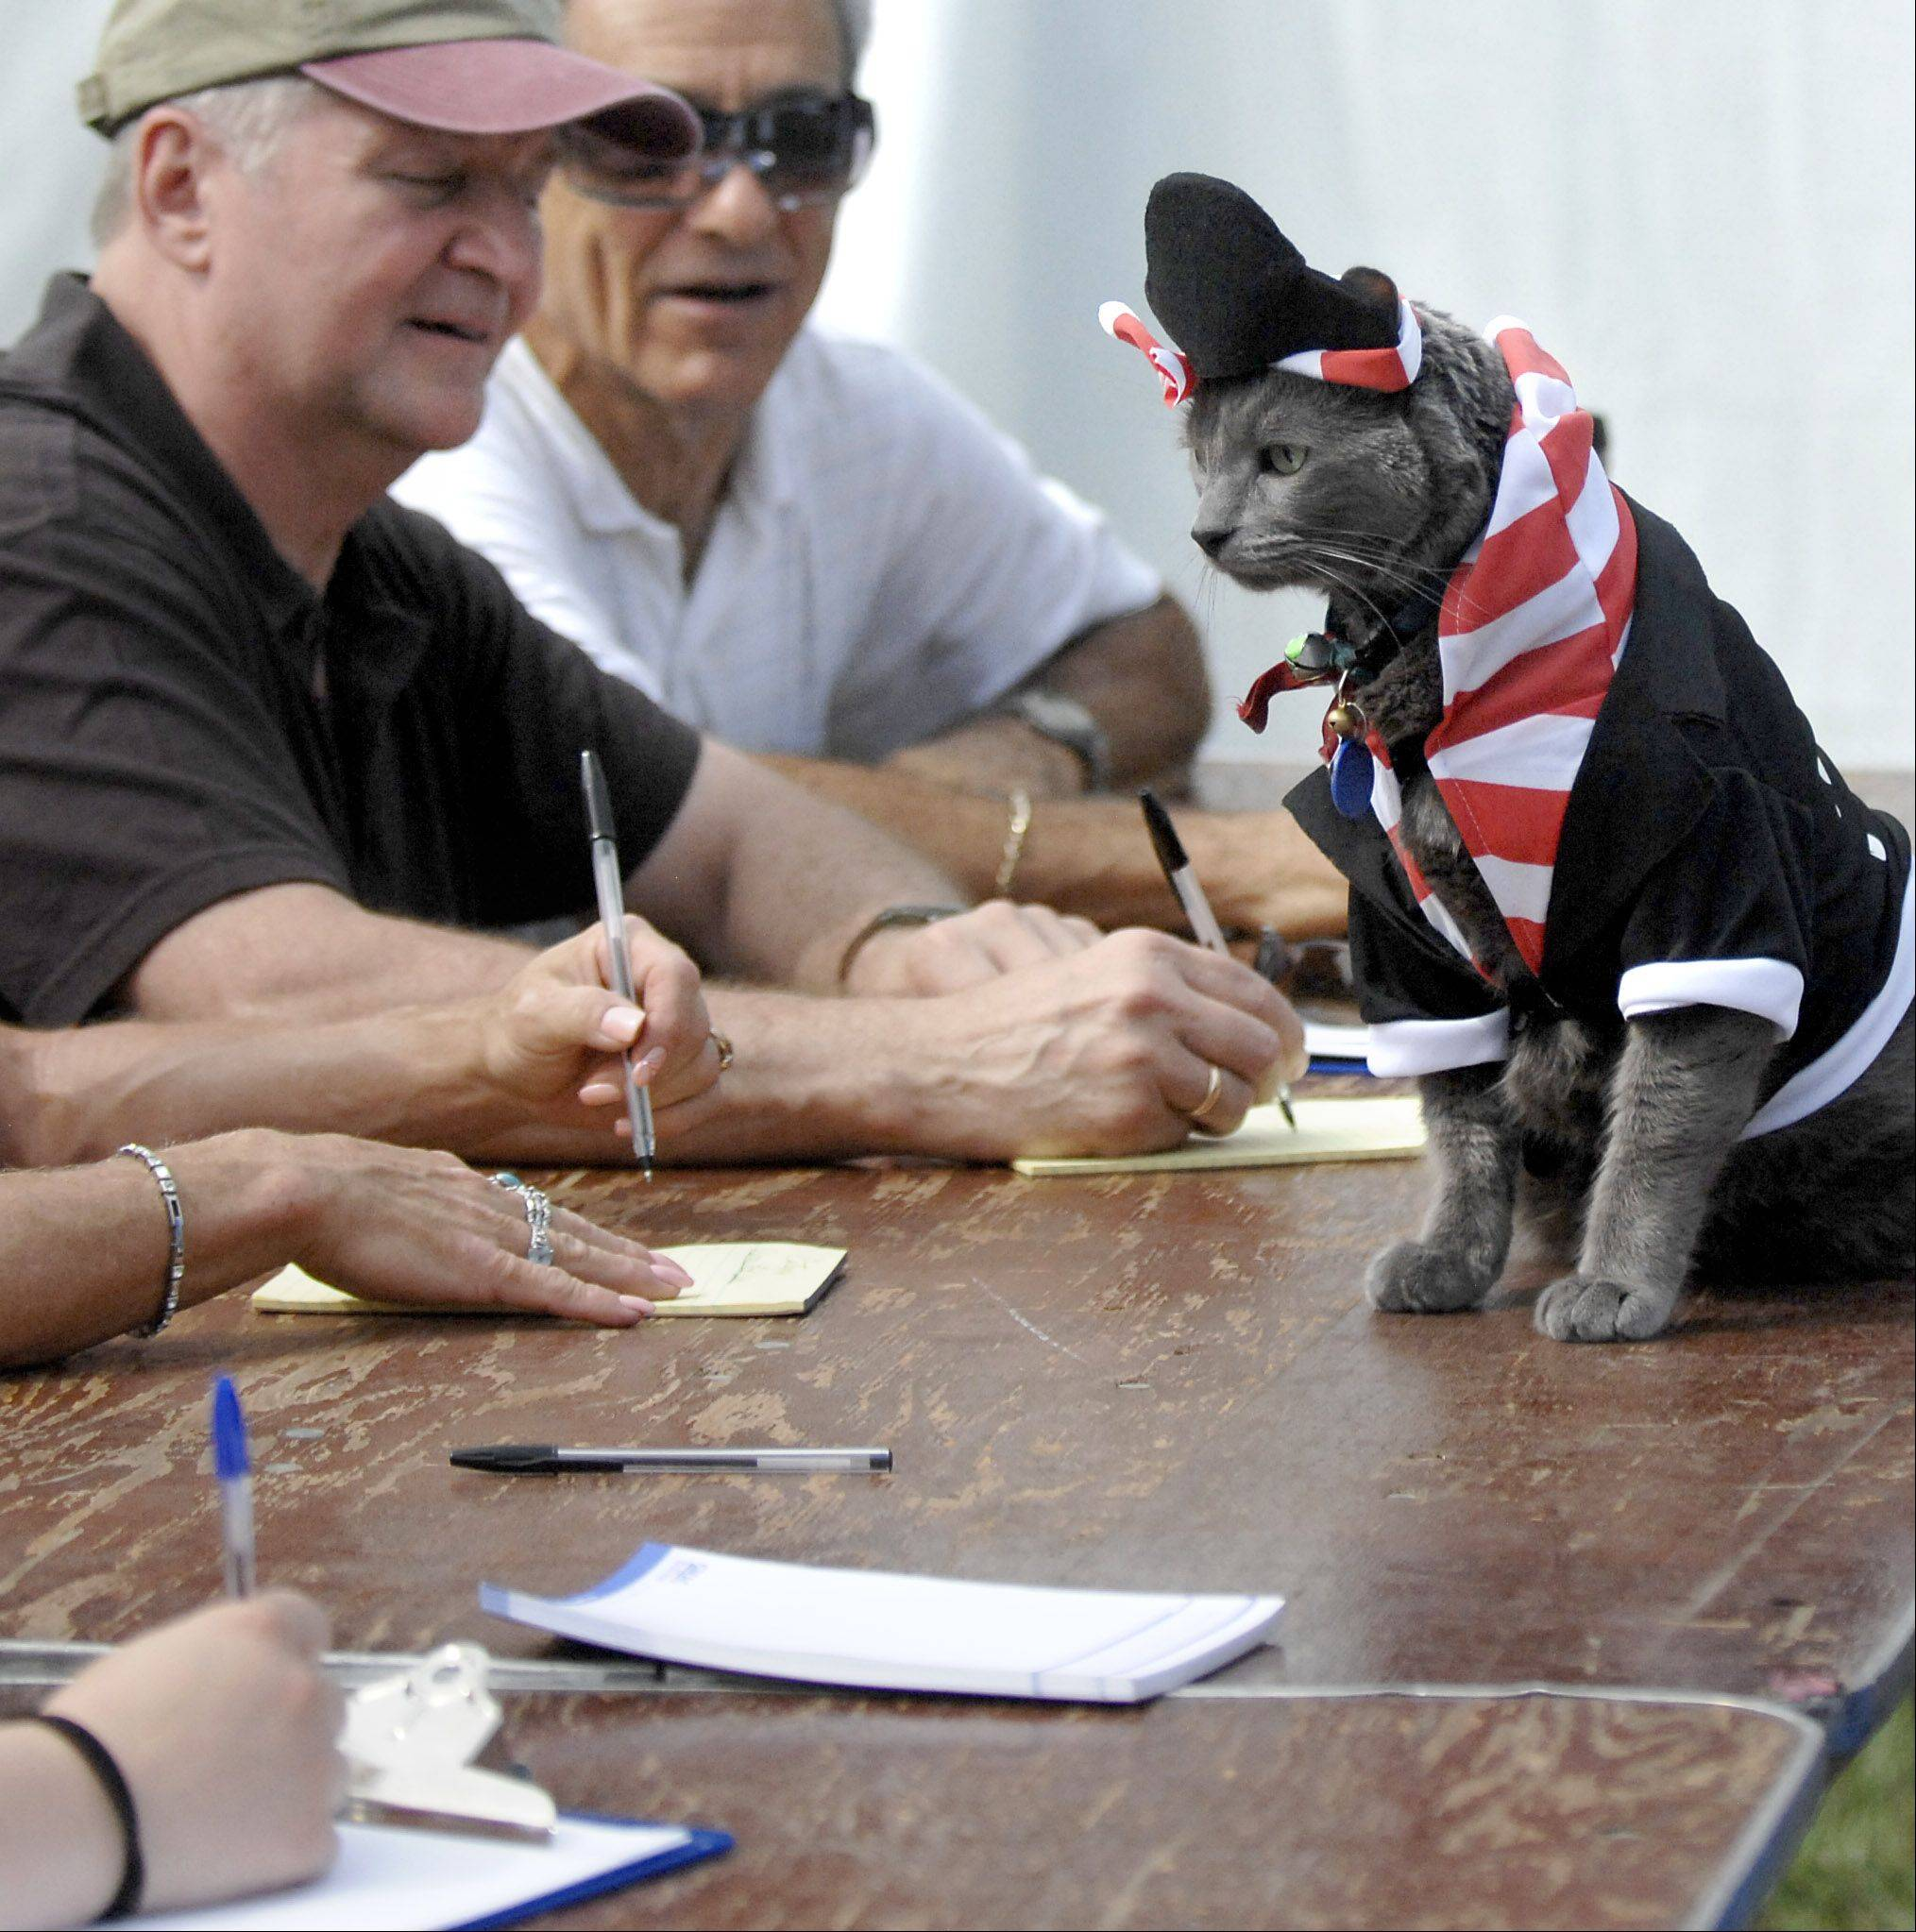 Bert, 12, is sized up by the judges in his pirate costume at the dog and cat show at the Algonquin Founders' Days festival in Towne Park. Bert is owned by Matt and Jill Sarto of Algonquin and their children Gabrielle and Riley. He was adopted from a shelter when Gabrielle was only 1, and has donned many costumes with help from Gabrielle. Bert won the category.